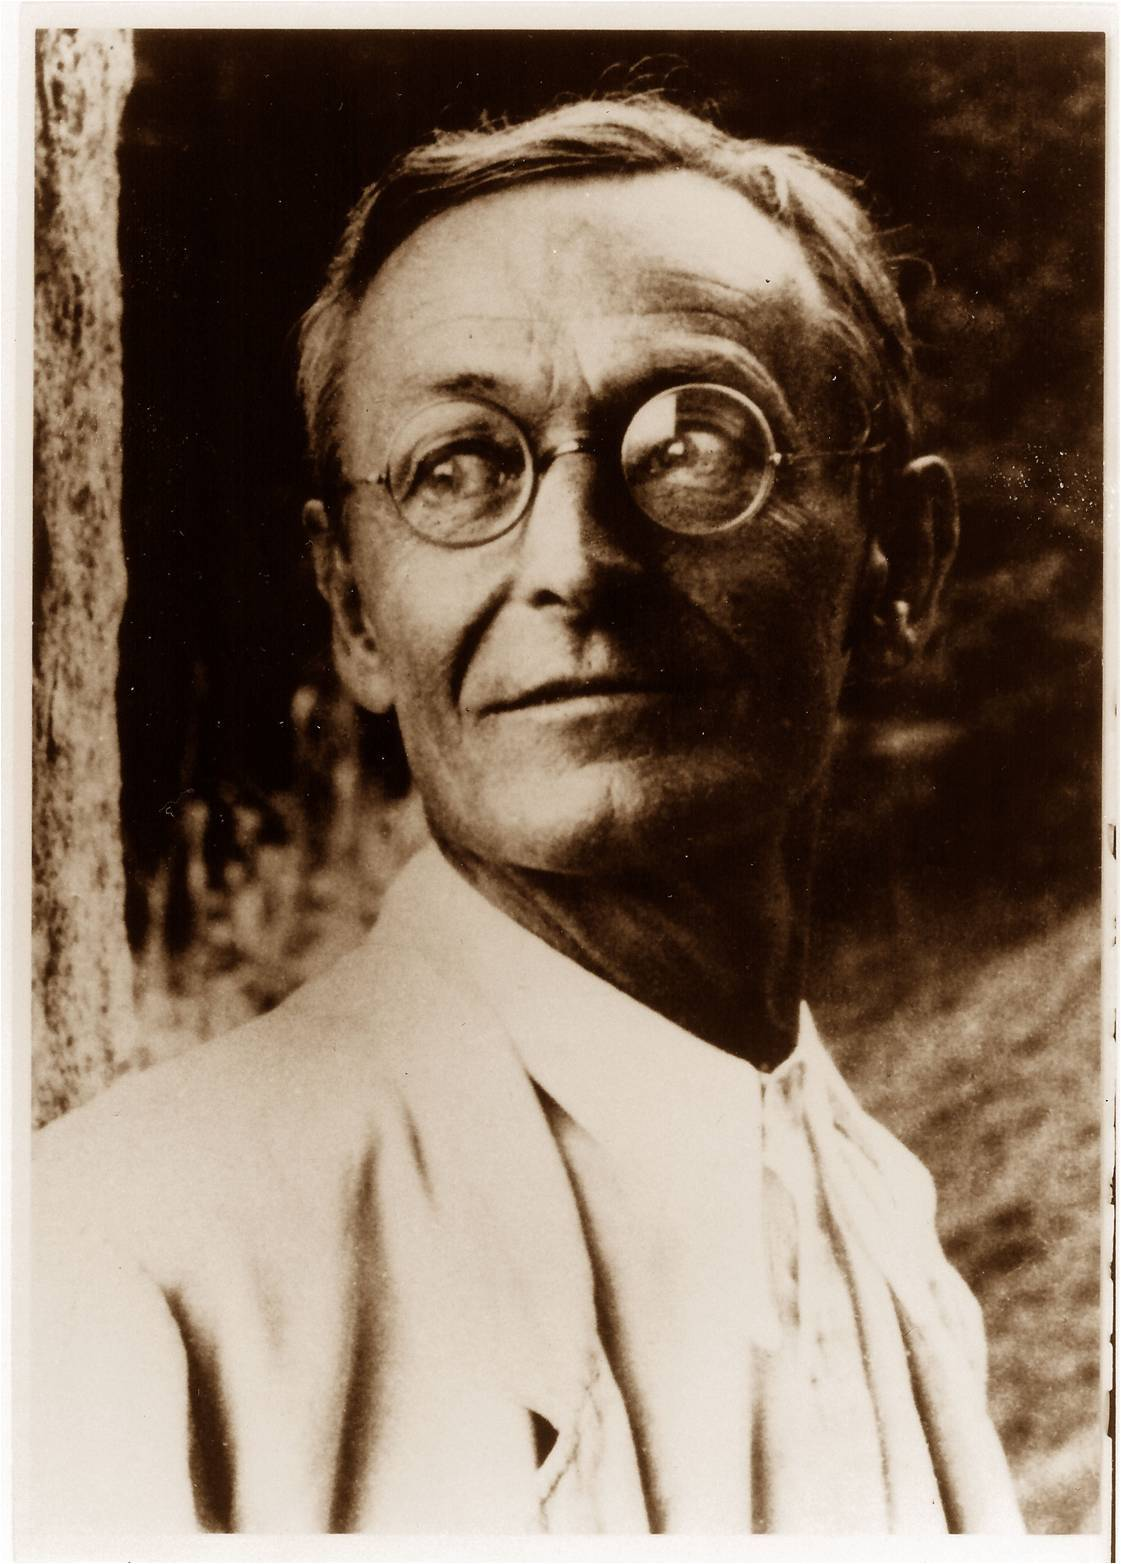 ALL DEATHS by Hermann Hesse I have already died all deaths, And I am going to die all deaths again,Die the death of the wood in the tree,Die the stone death in the mountain,Earth death in the sand,Leaf death in the crackling summer grassAnd the poor bloody human death. I will be born again, flowers,Tree and grass, I will be born again,Fish and deer, bird and butterfly.And out of every form,Longing will drag me up the stairwaysTo the last suffering,Up to the suffering of men. O quivering tensed bow,When the raging fist of longingCommands both poles of lifeTo bend to each other!Yet often, and many times over,You will hunt me down from death to birthOn the painful track of the creations,The glorious track of the creations. (via journalofanobody:)